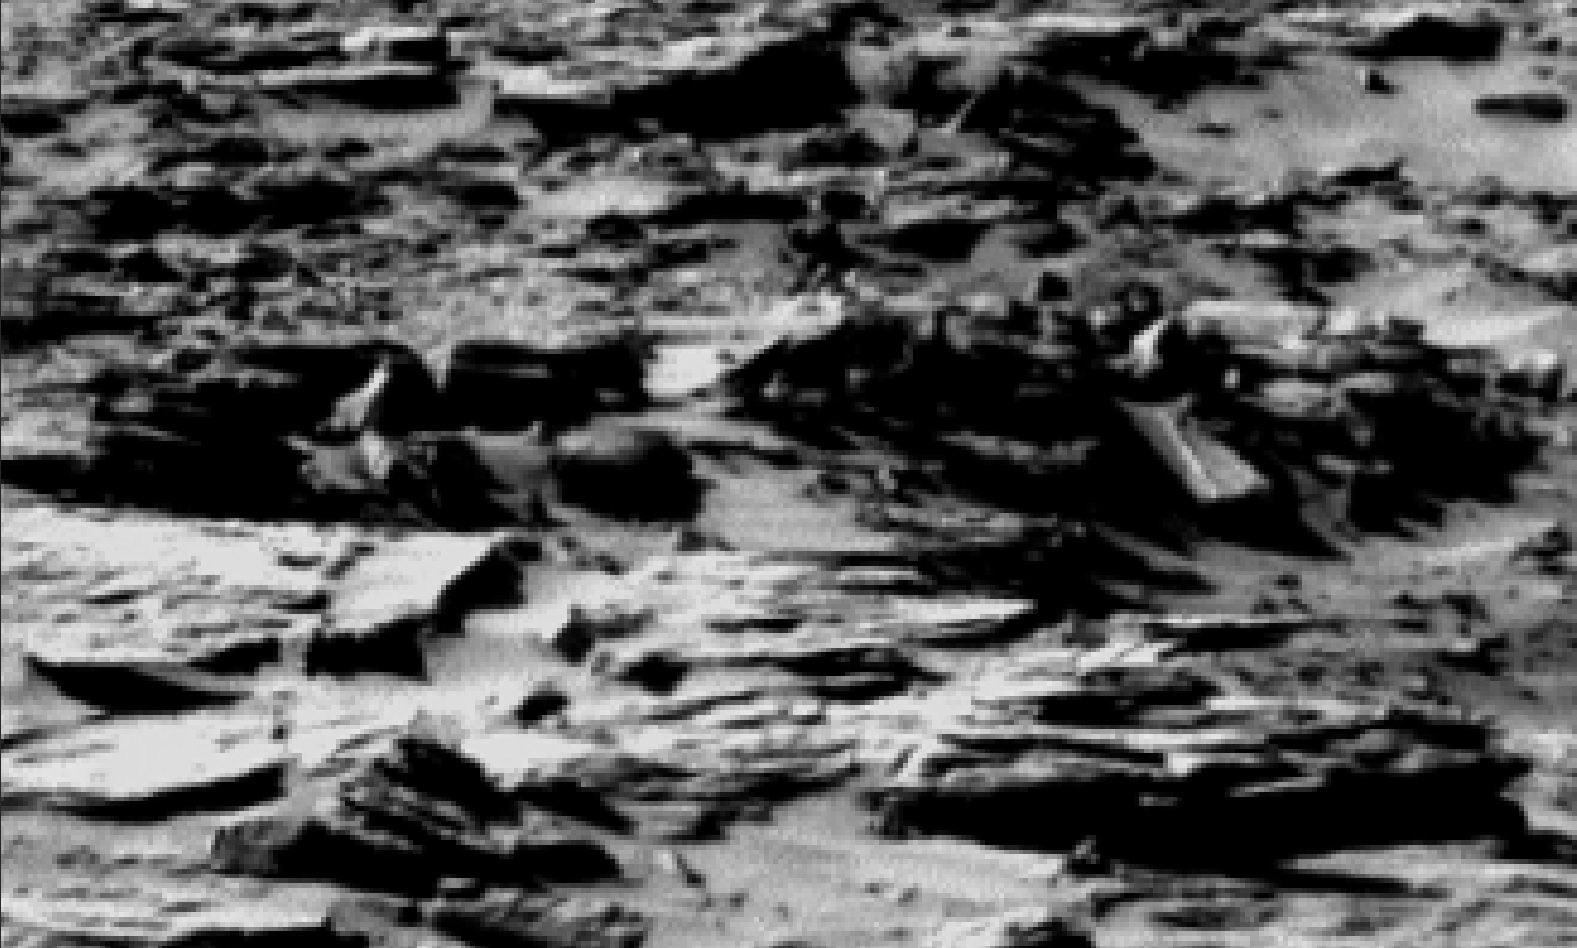 mars sol 1301 anomaly-artifacts 4 was life on mars